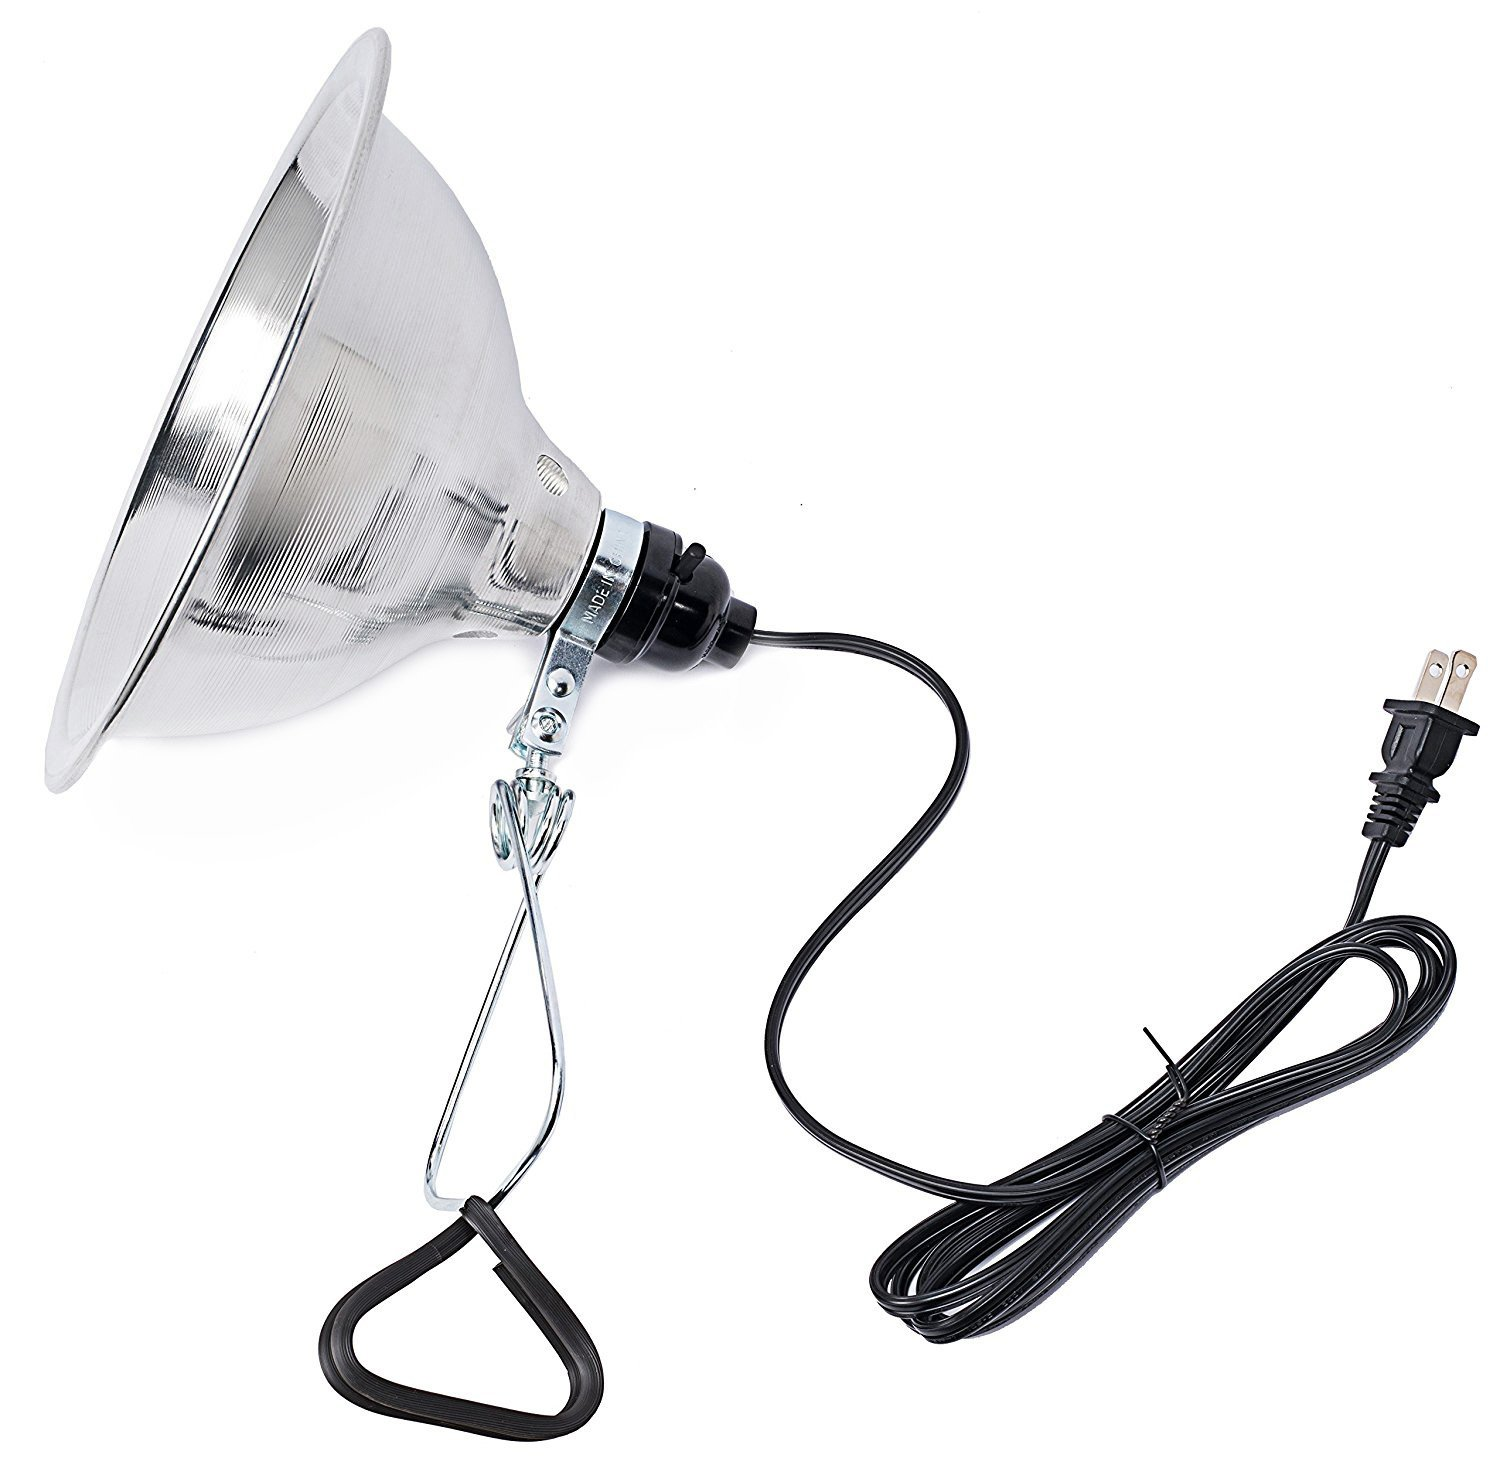 Simple Deluxe Clamp Lamp Light with 8.5 Inch Aluminum Reflector up to 60 Watt E26 (no Bulb Included) 6 Feet Cord UL Listed